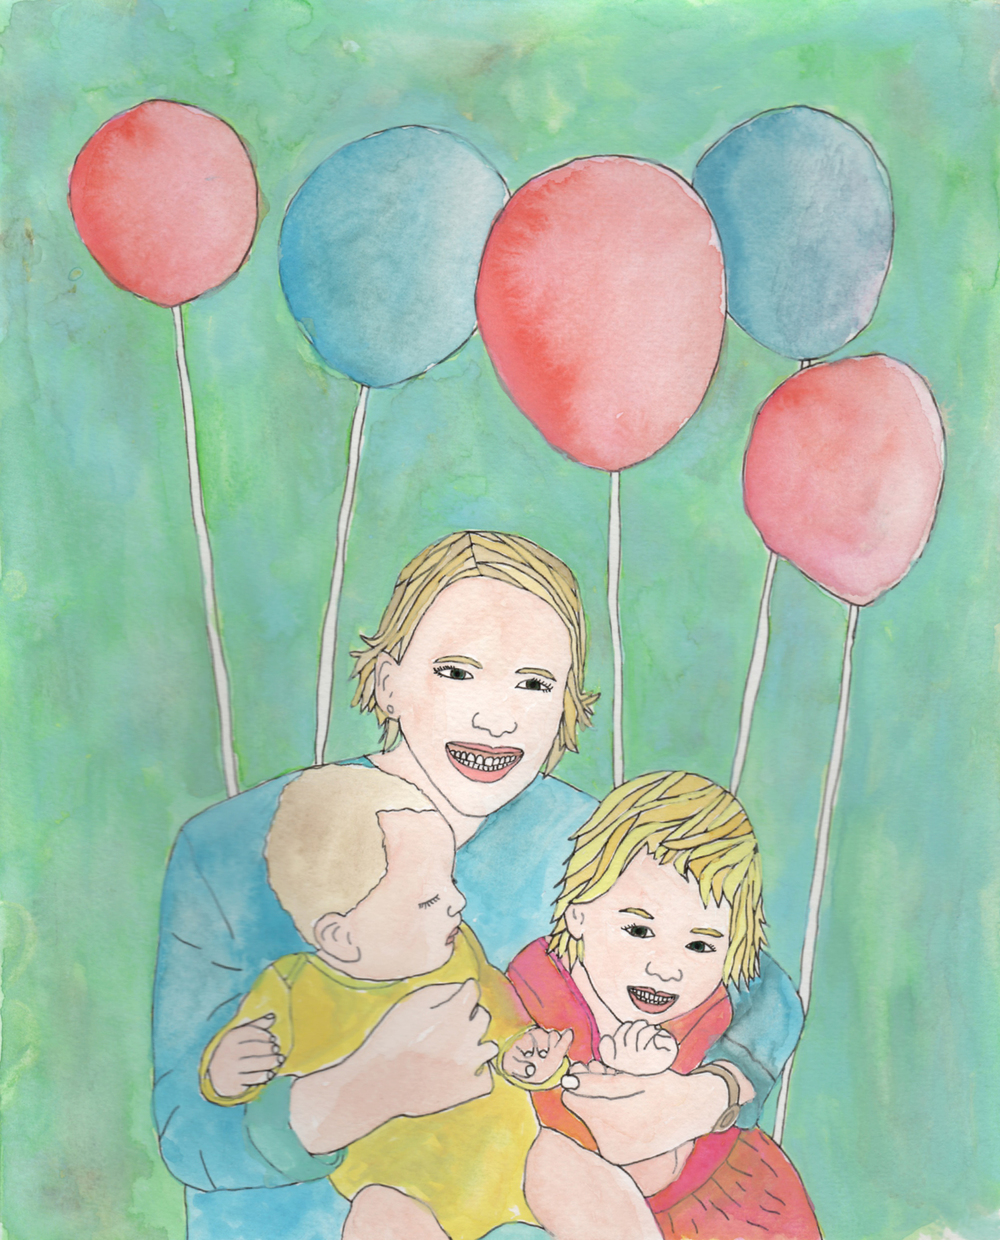 custom portrait illustration elise joy blaha watercolor nicole stevenson studio.jpg